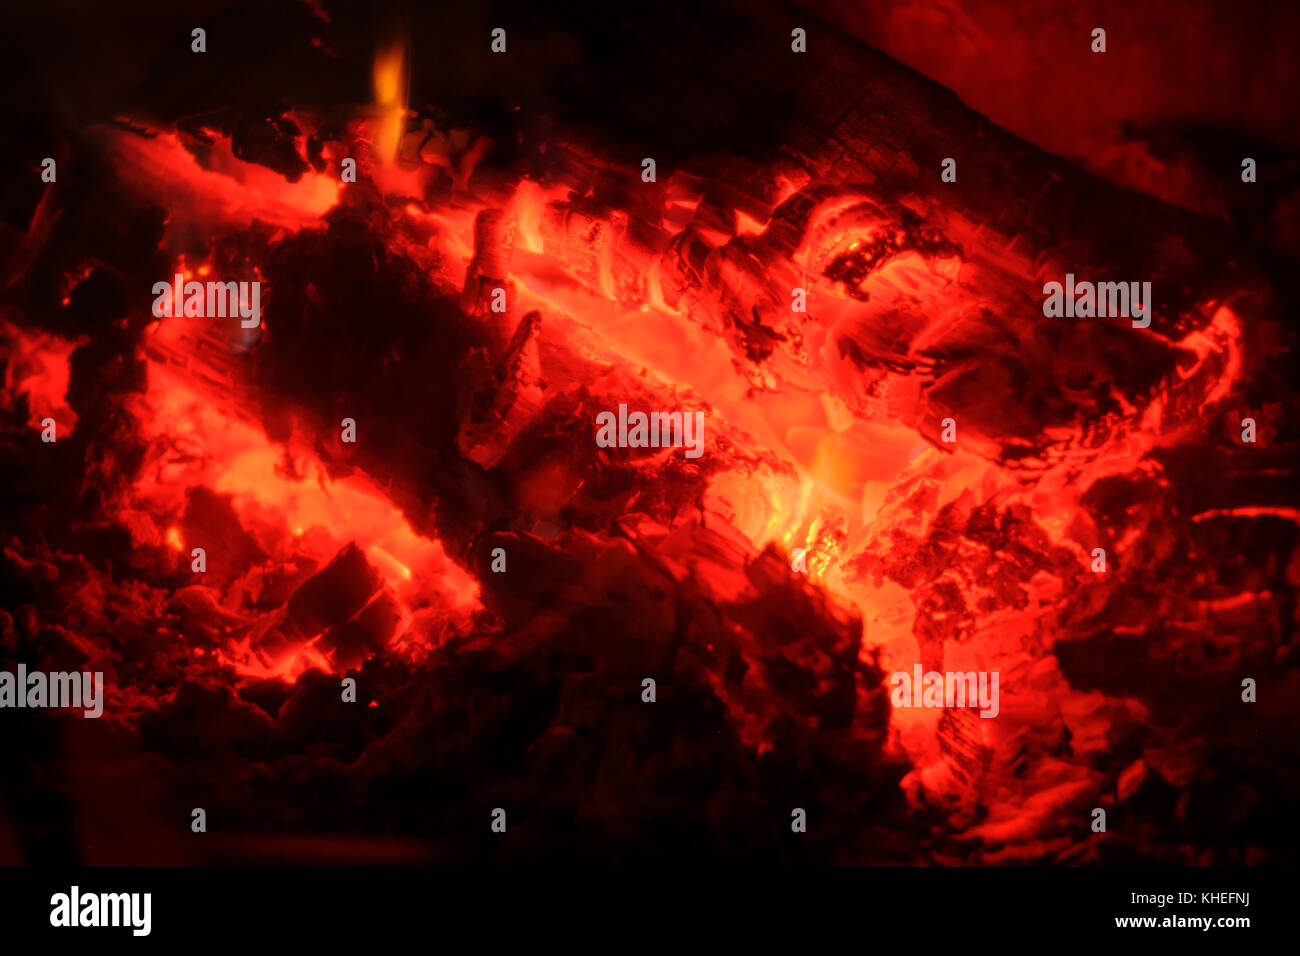 Fire burns in the fireplace - Stock Image